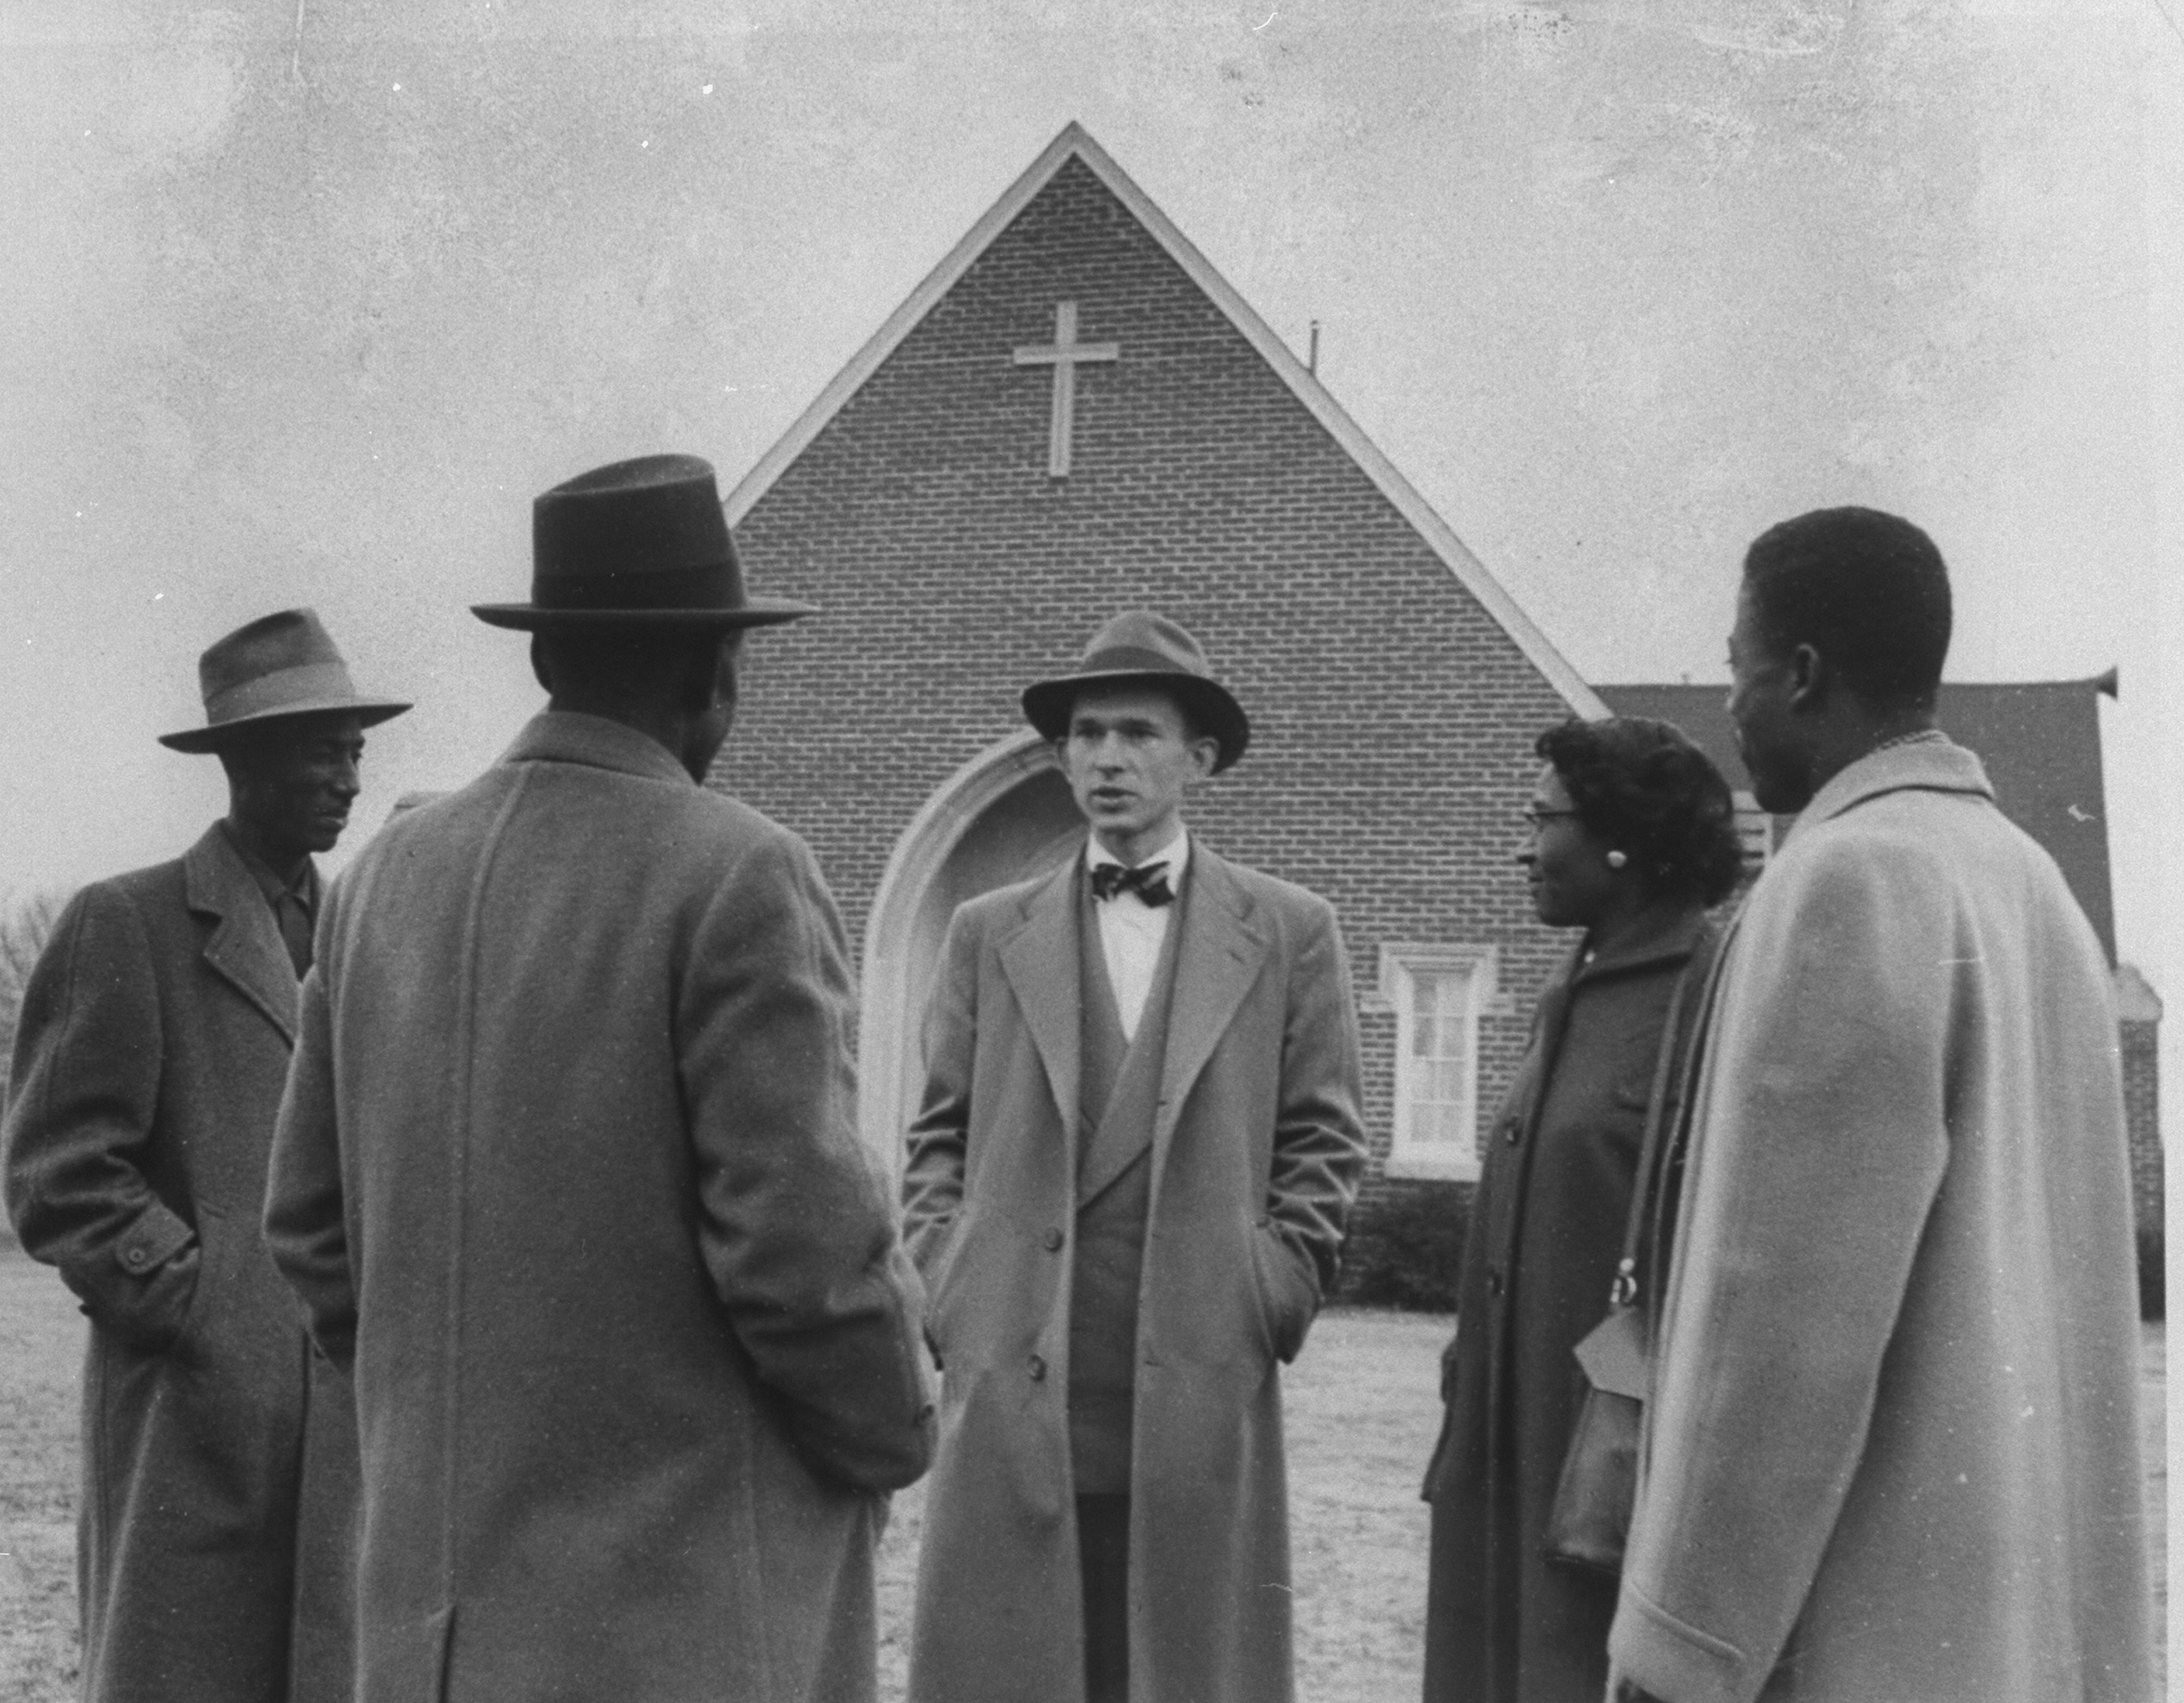 Robert Graetz, White pastor who helped organize Montgomery bus boycott, dies at 92